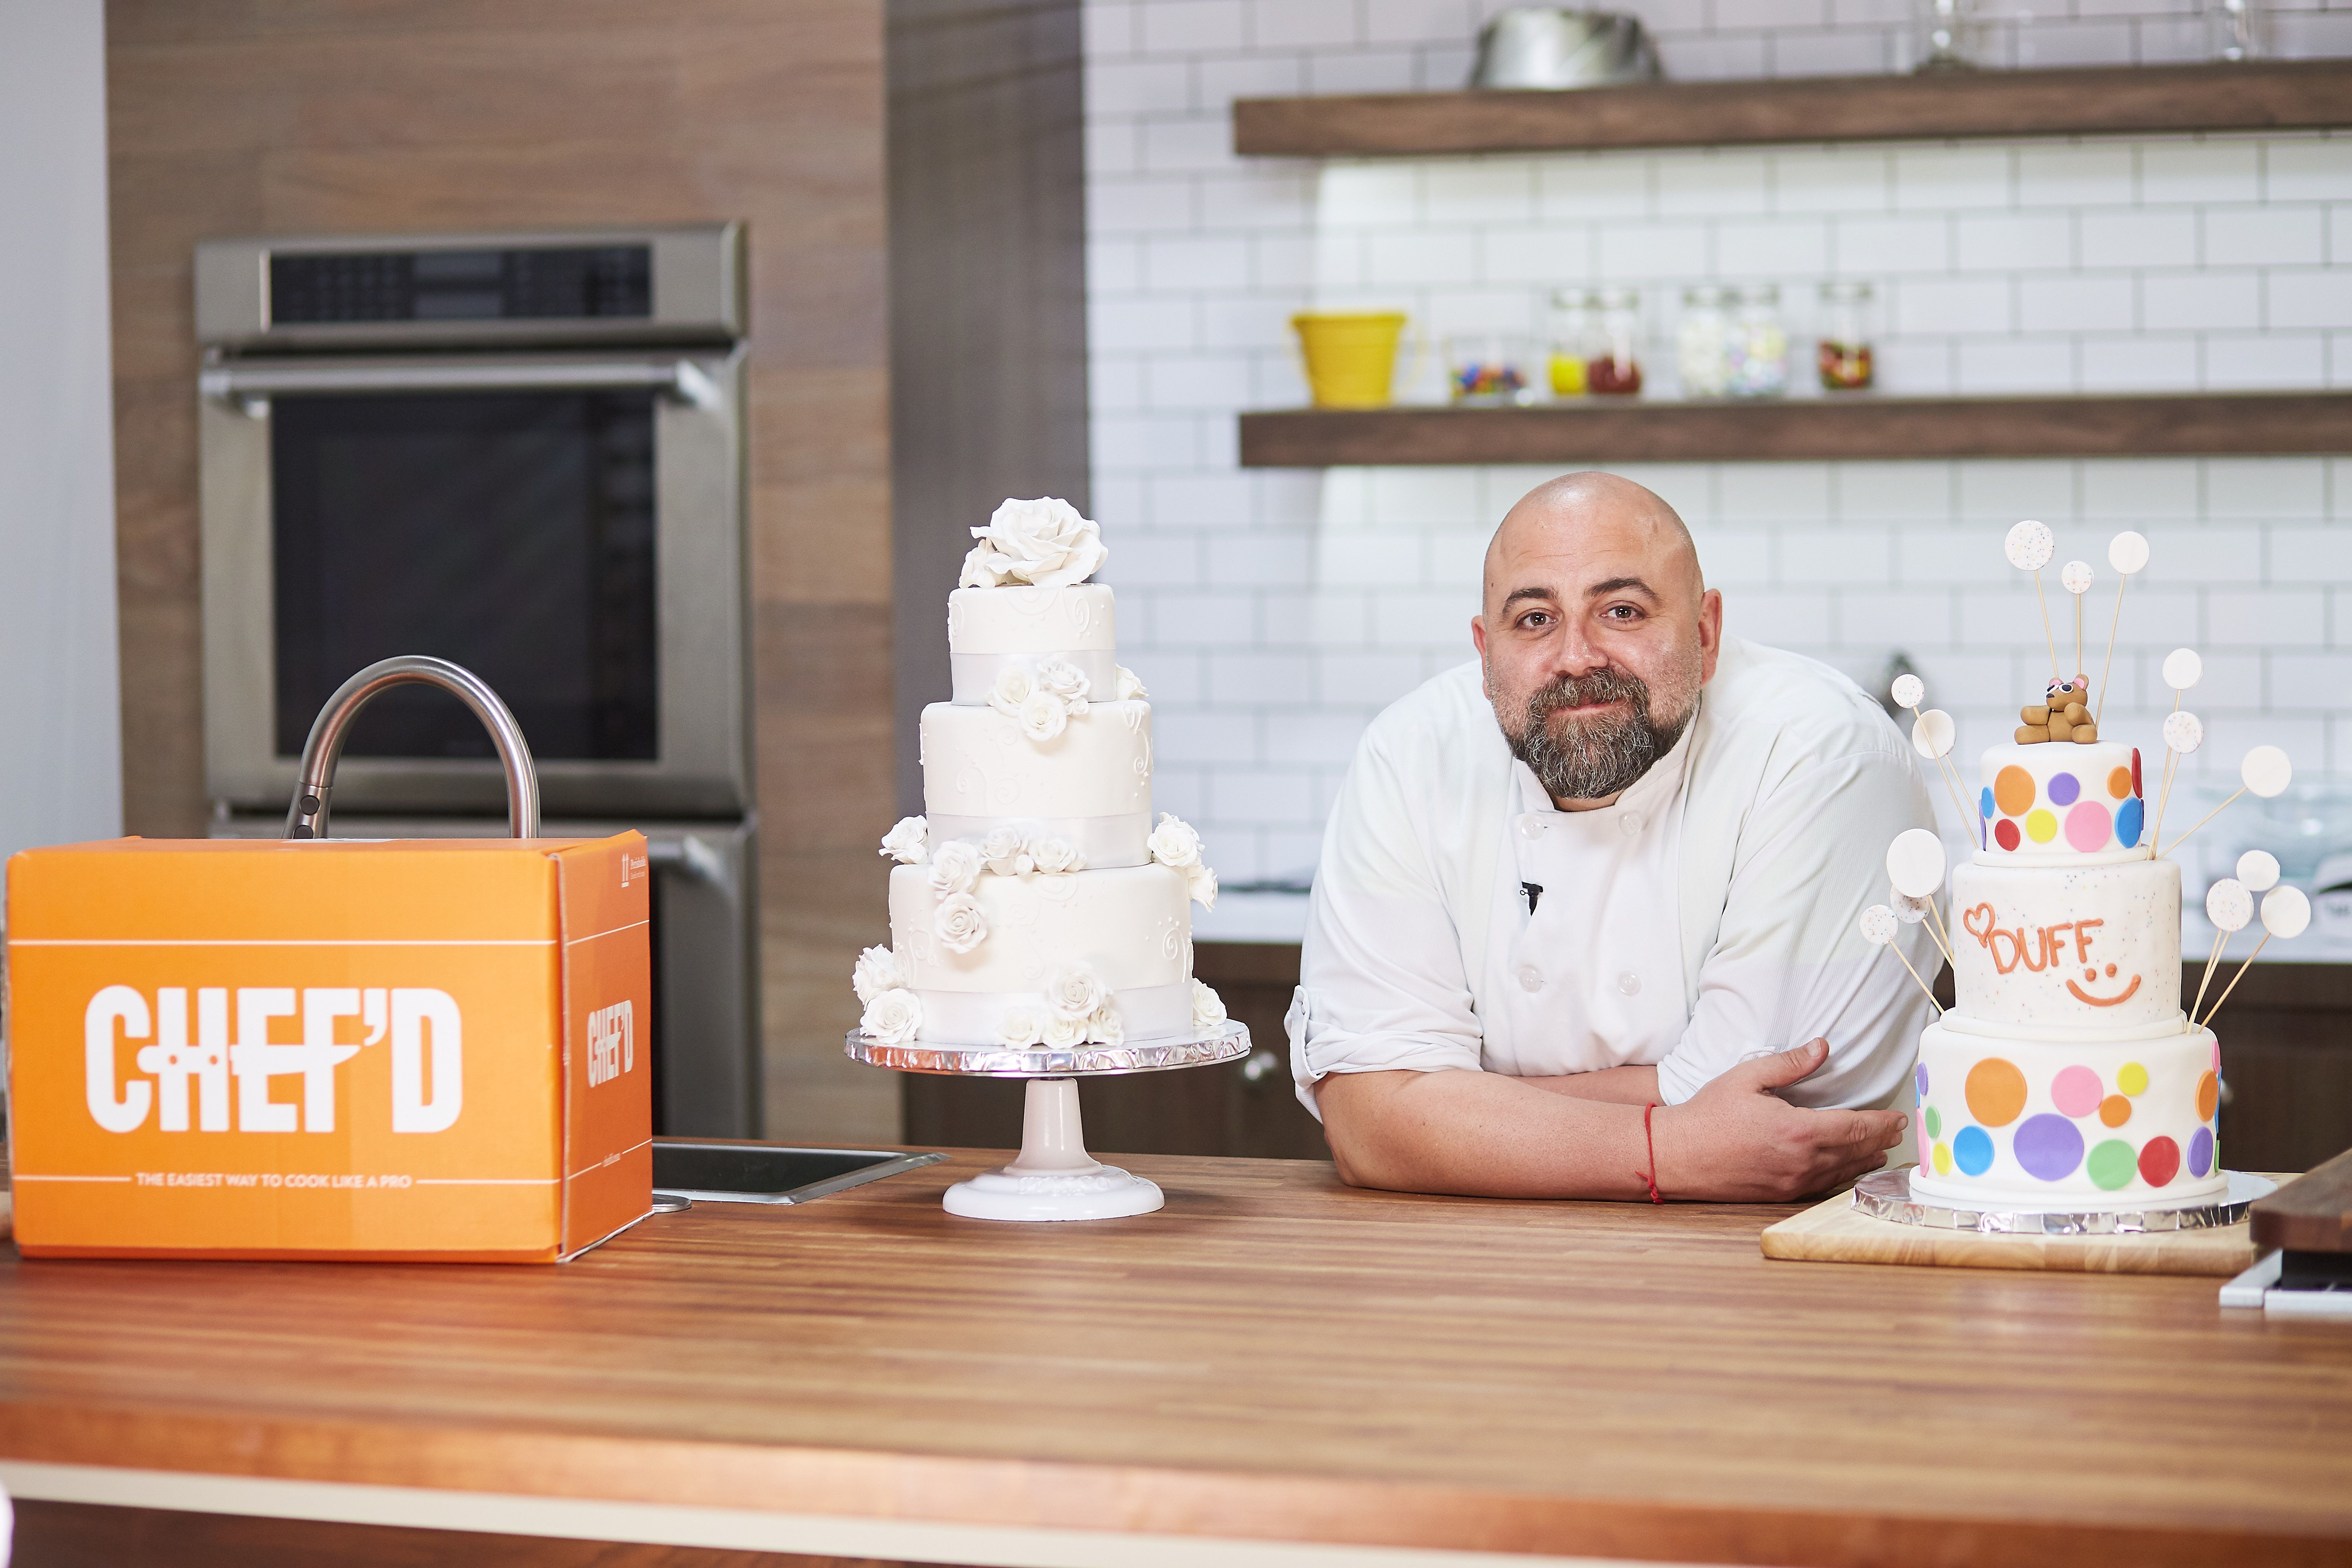 Duff Goldman Launched A Diy Wedding Cake Kit For Crafty Brides And